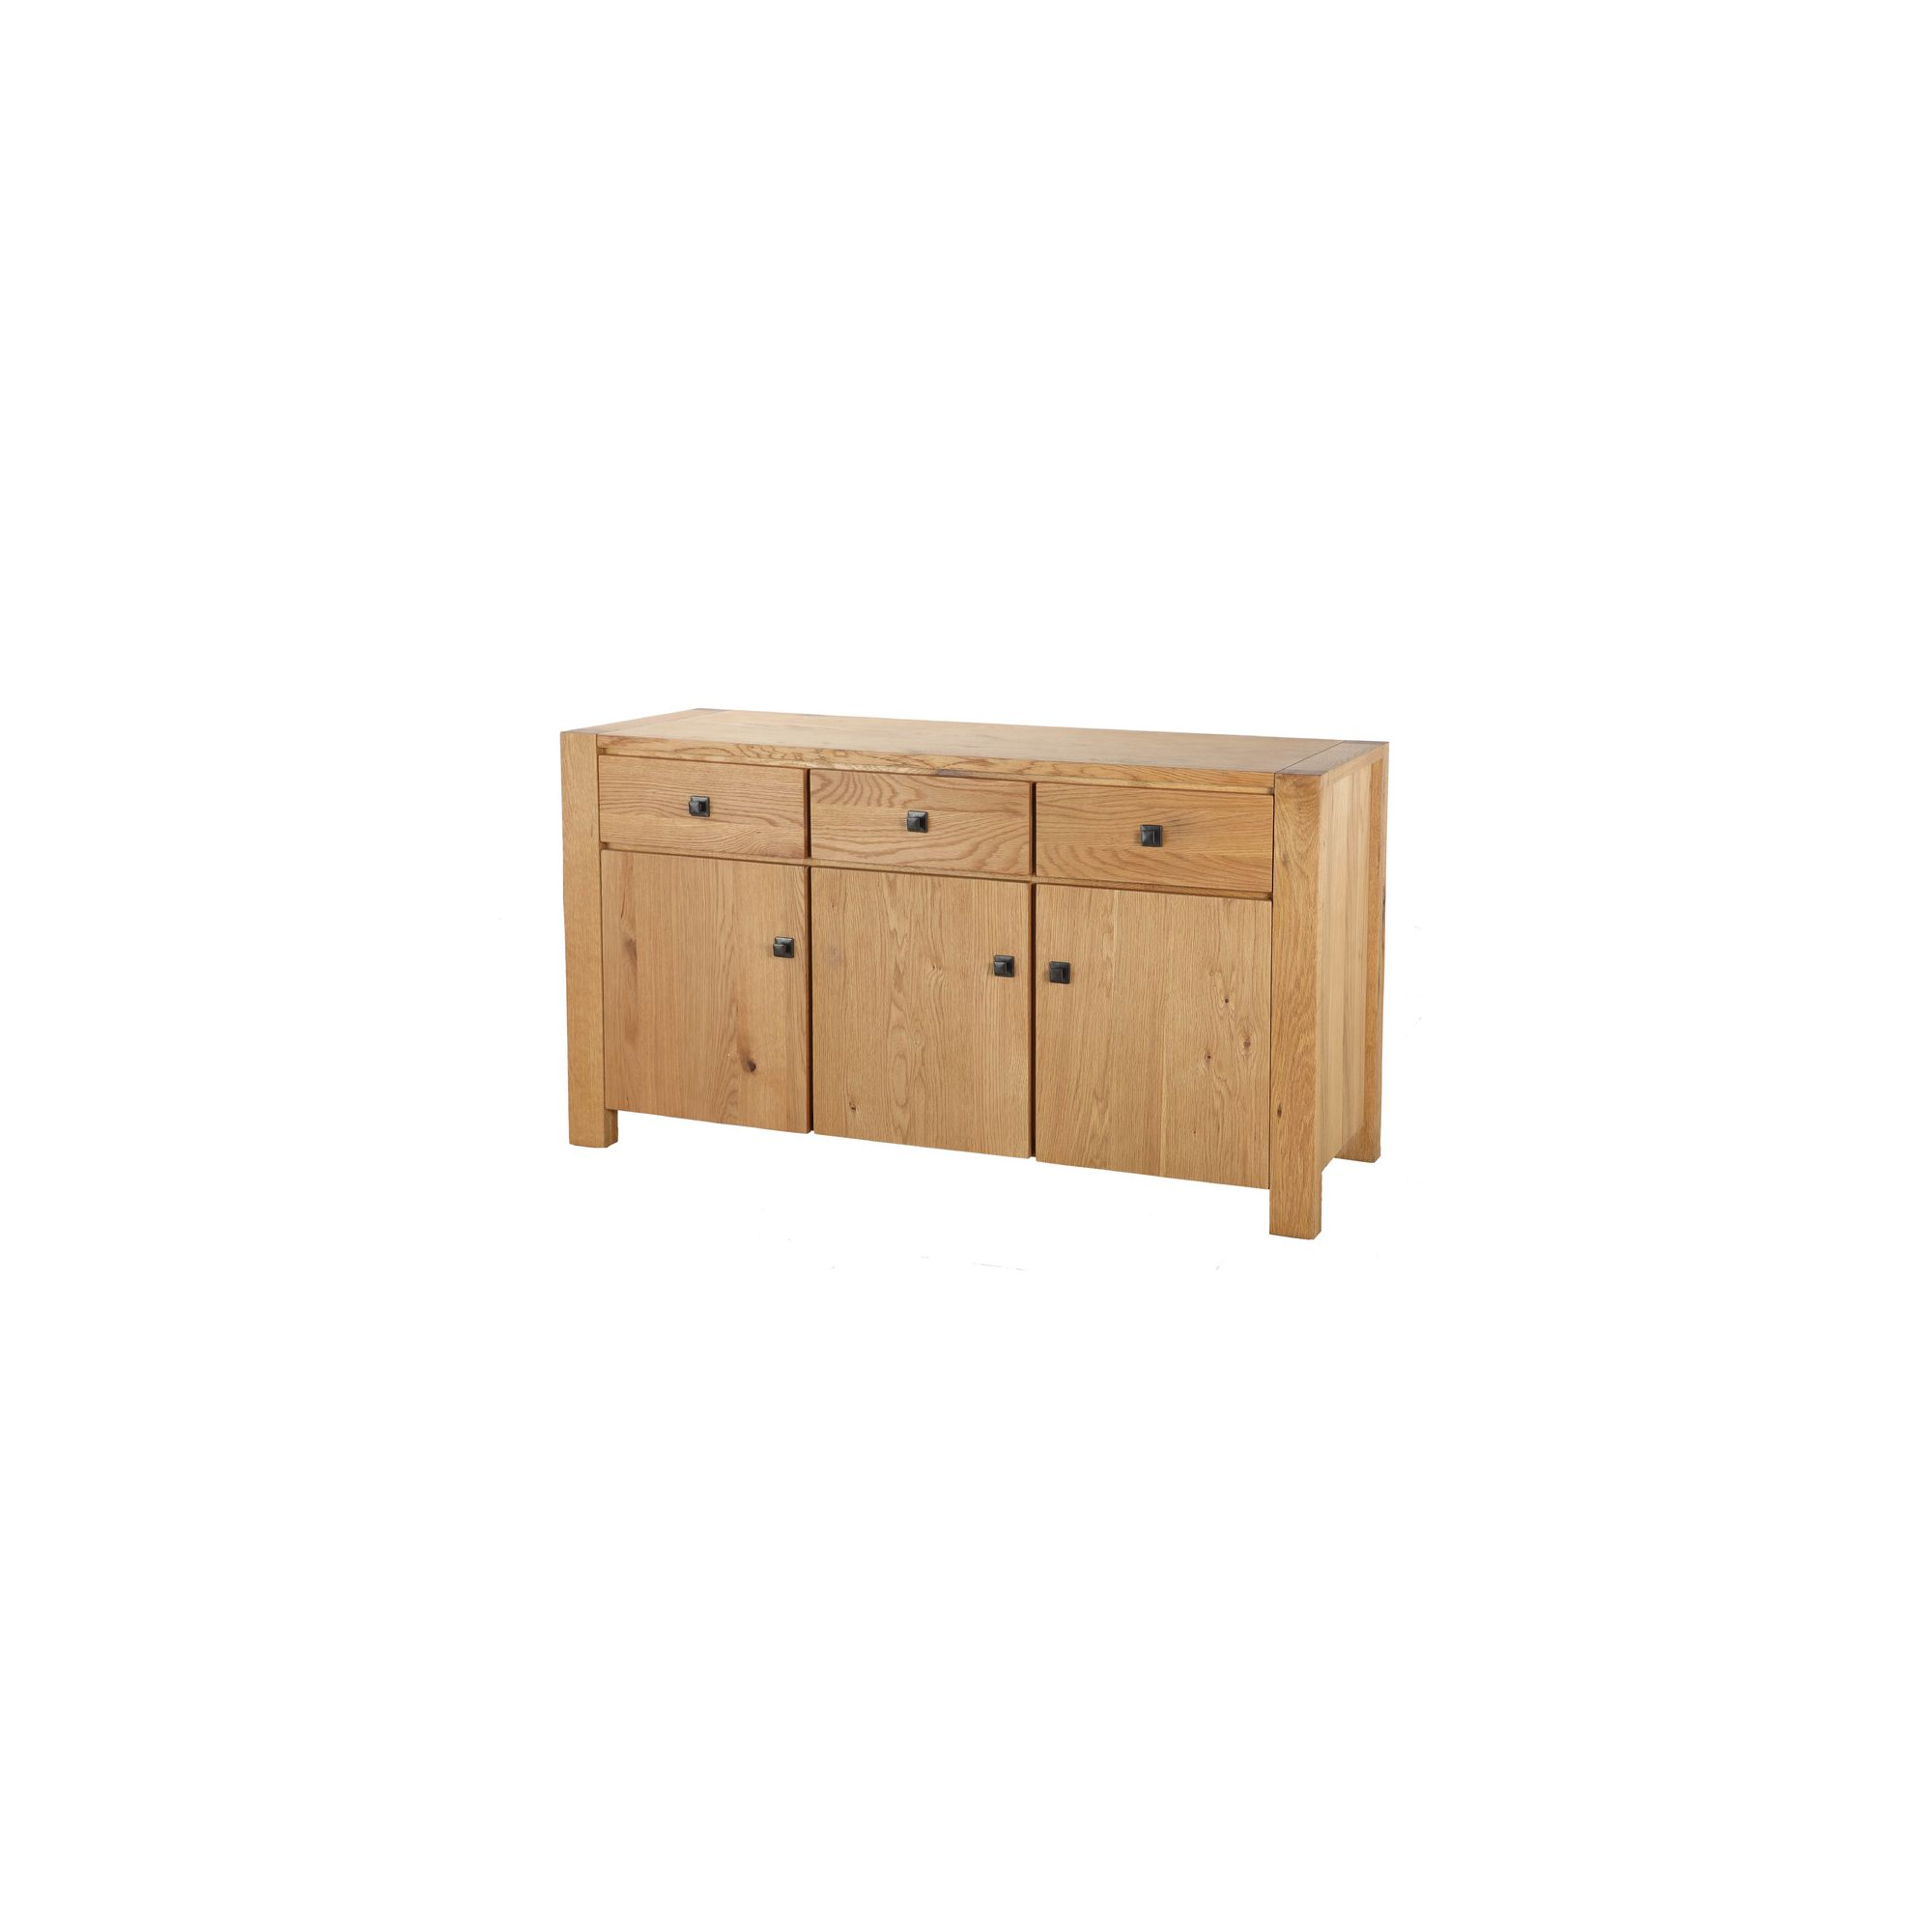 Oakinsen Clermont Large Sideboard at Tesco Direct